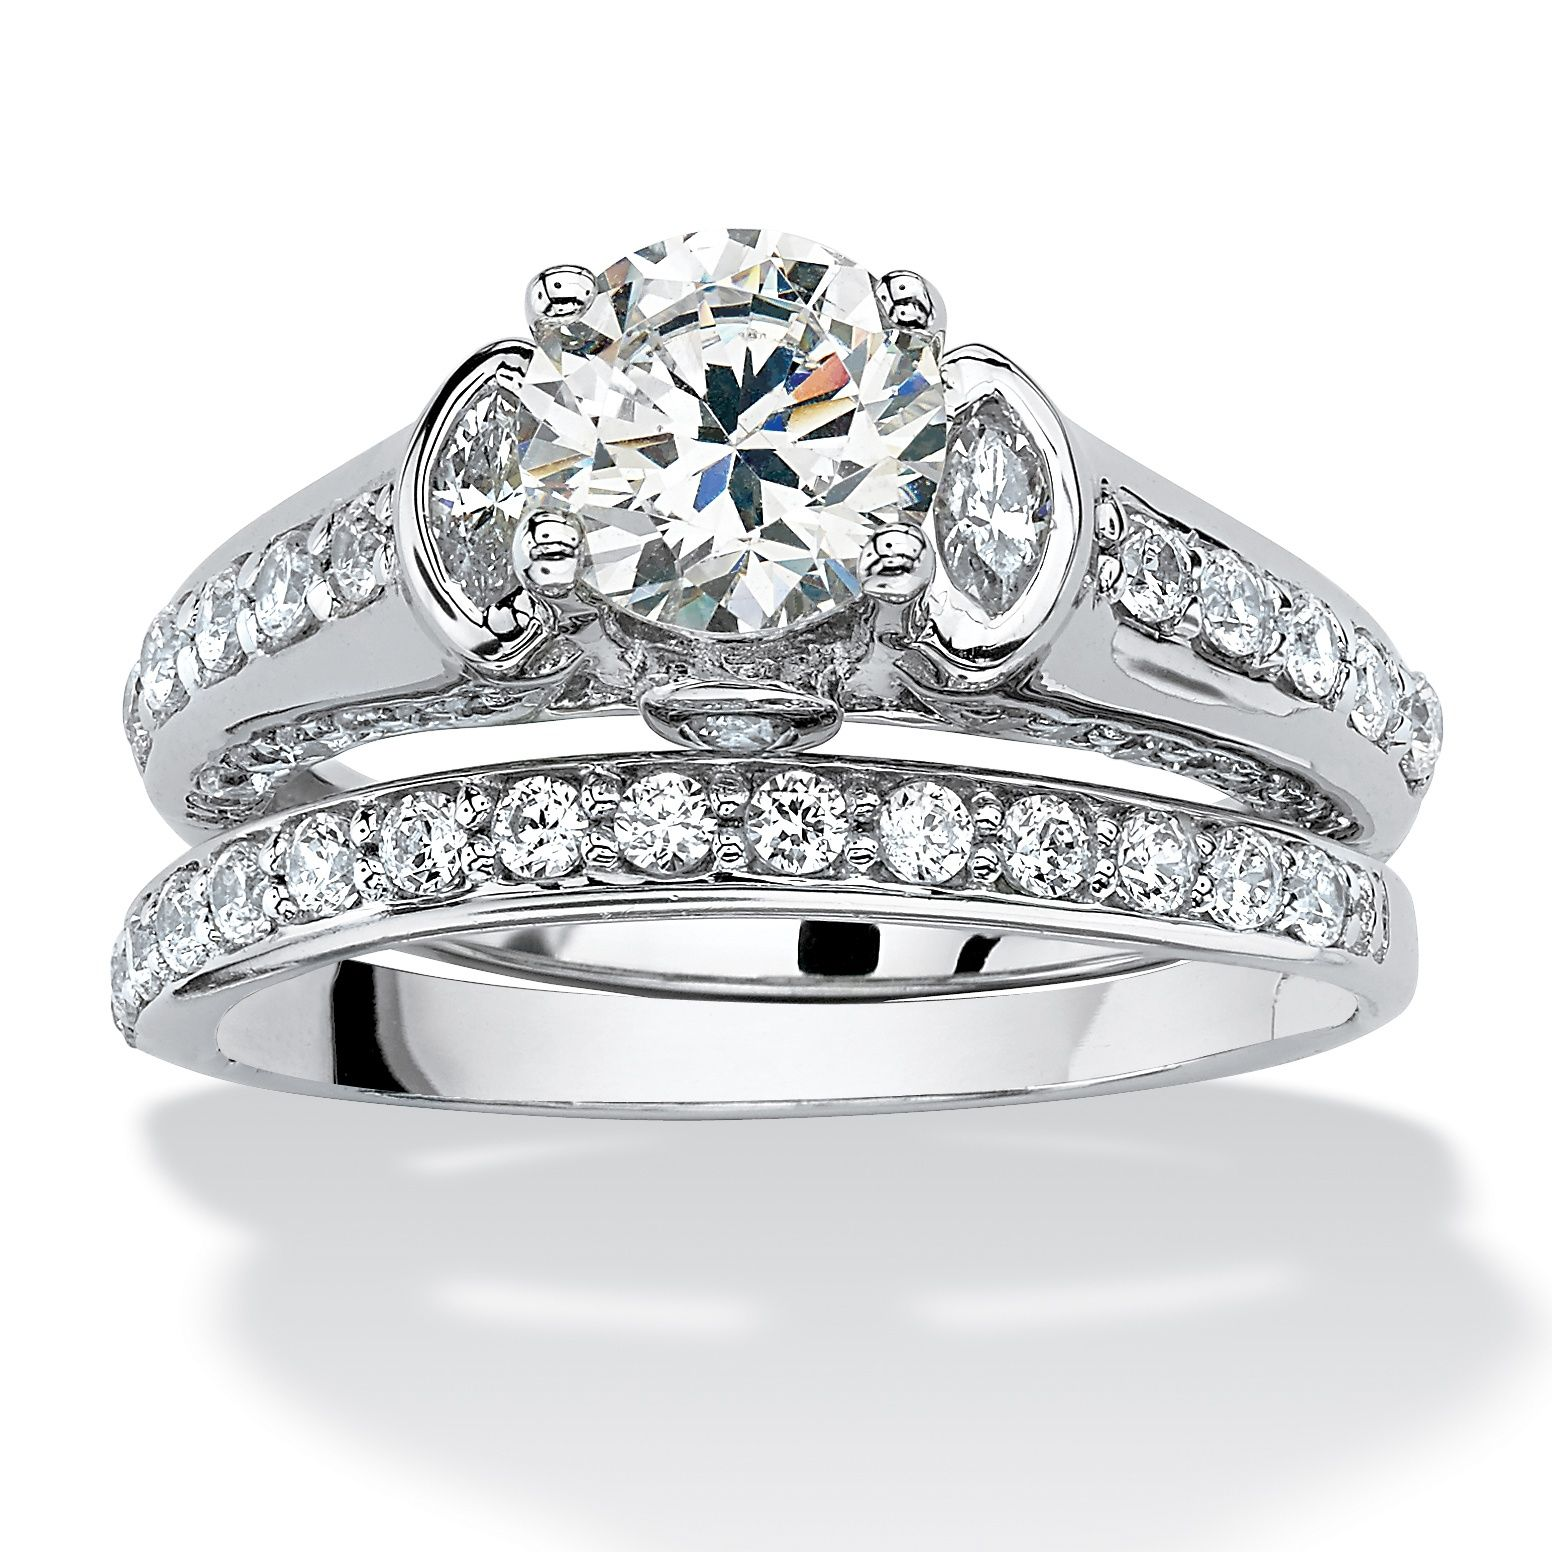 2 Piece 2 67 Tcw Round Cubic Zirconia Bridal Ring Set In Platinum Over Sterling Silver On Palmbeach Jewel Wedding Rings Round Jewelry Bridal Ring Set